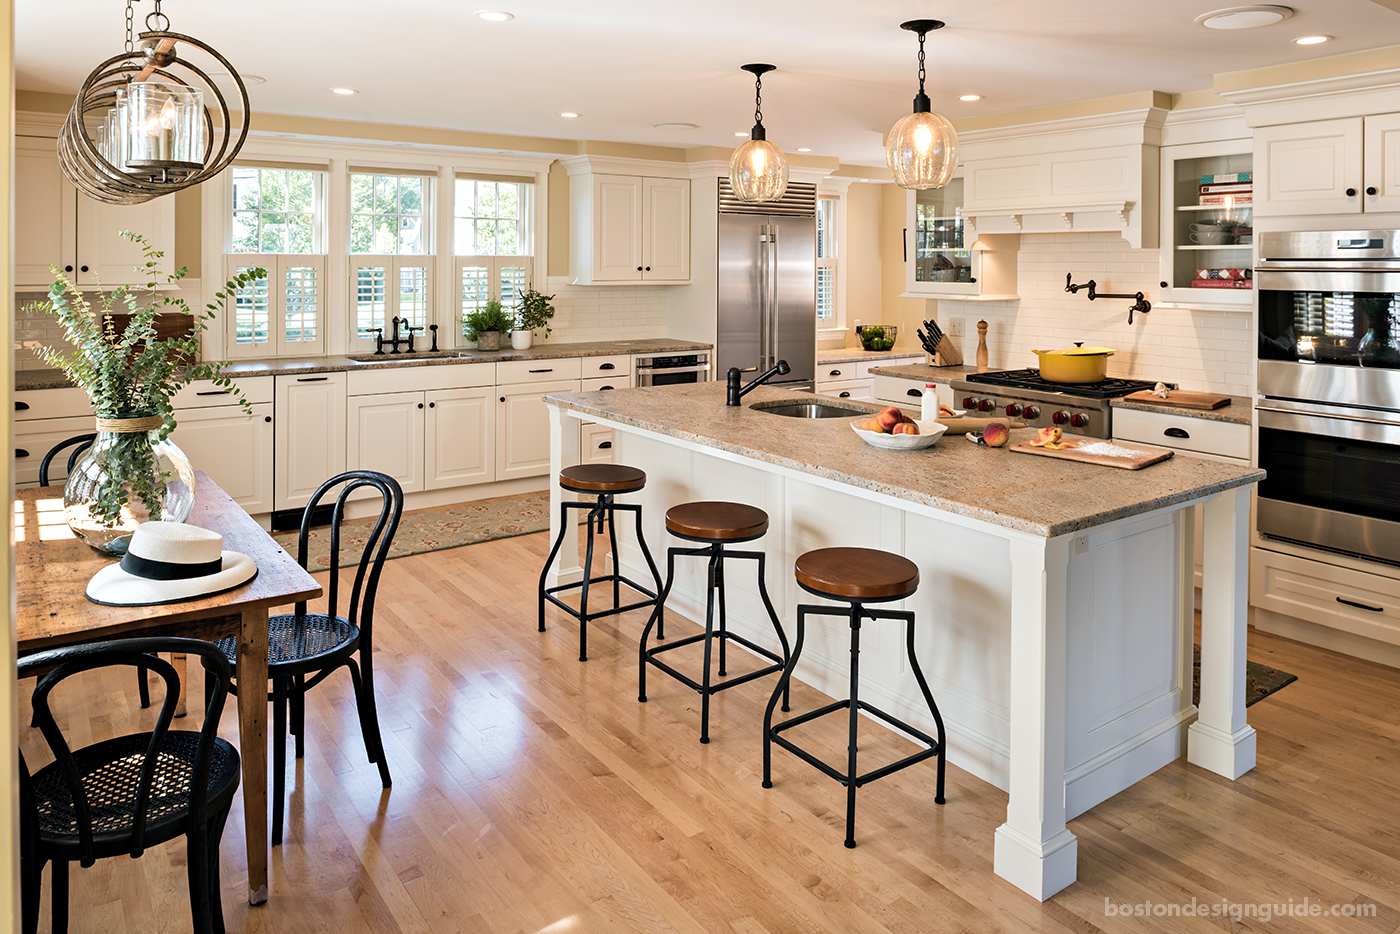 A Historic Hingham Home Gets A Kitchen Makeover Boston Design Guide